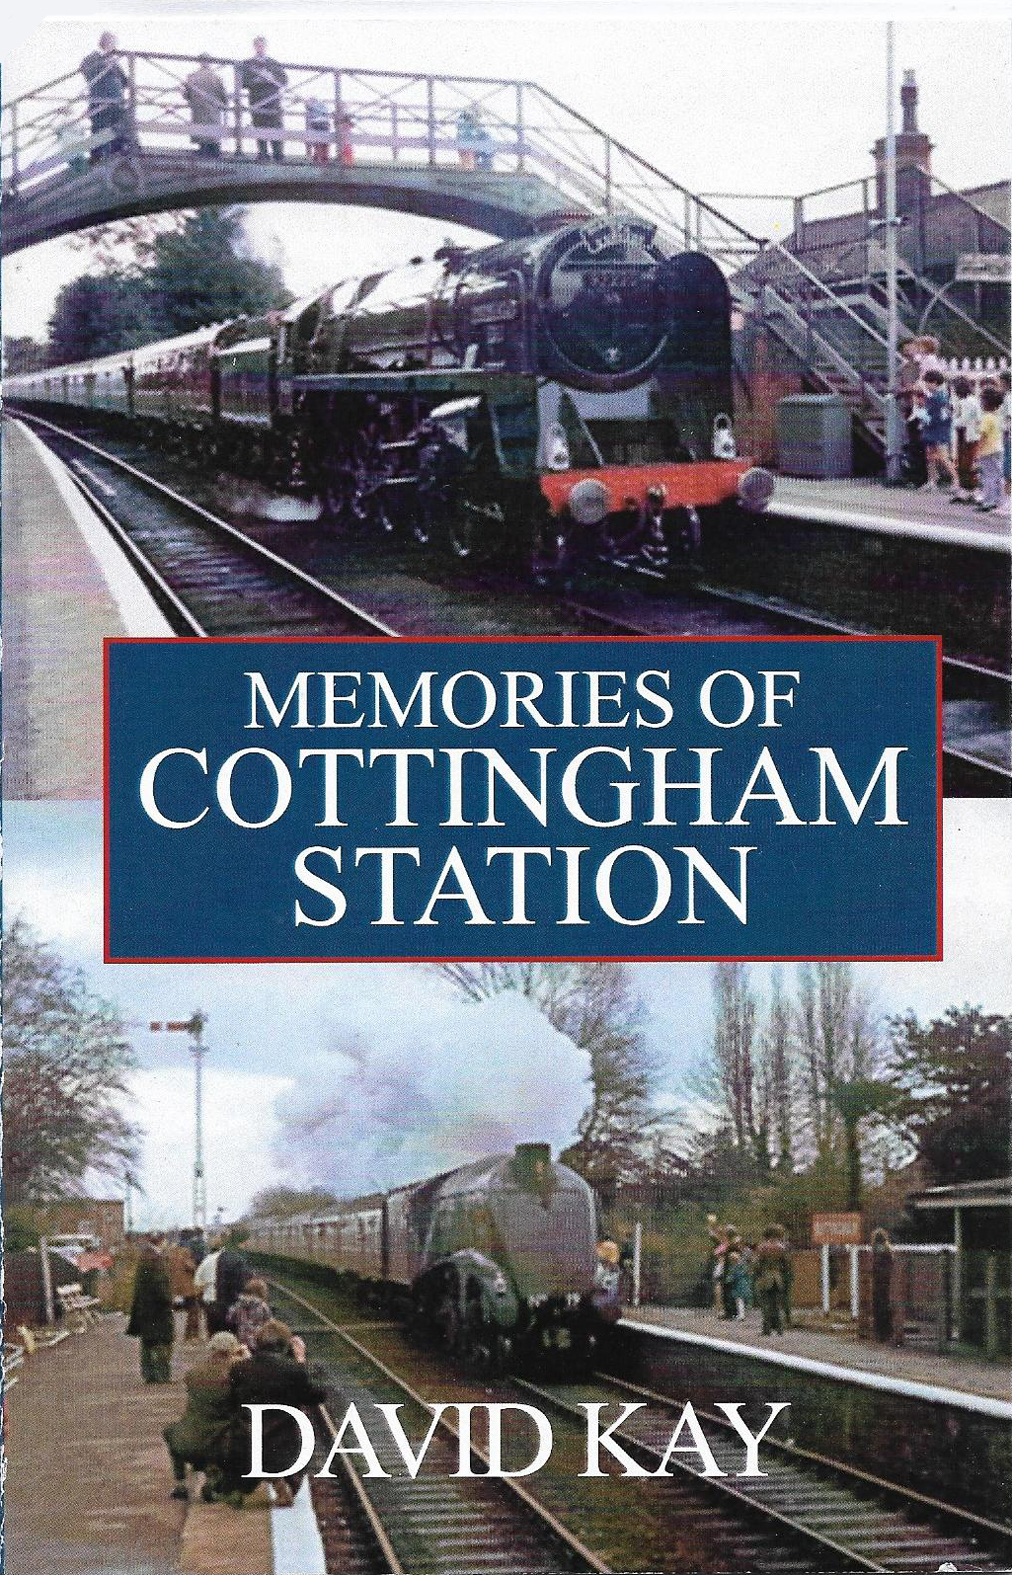 MEMORIES OF COTTINGHAM STATION